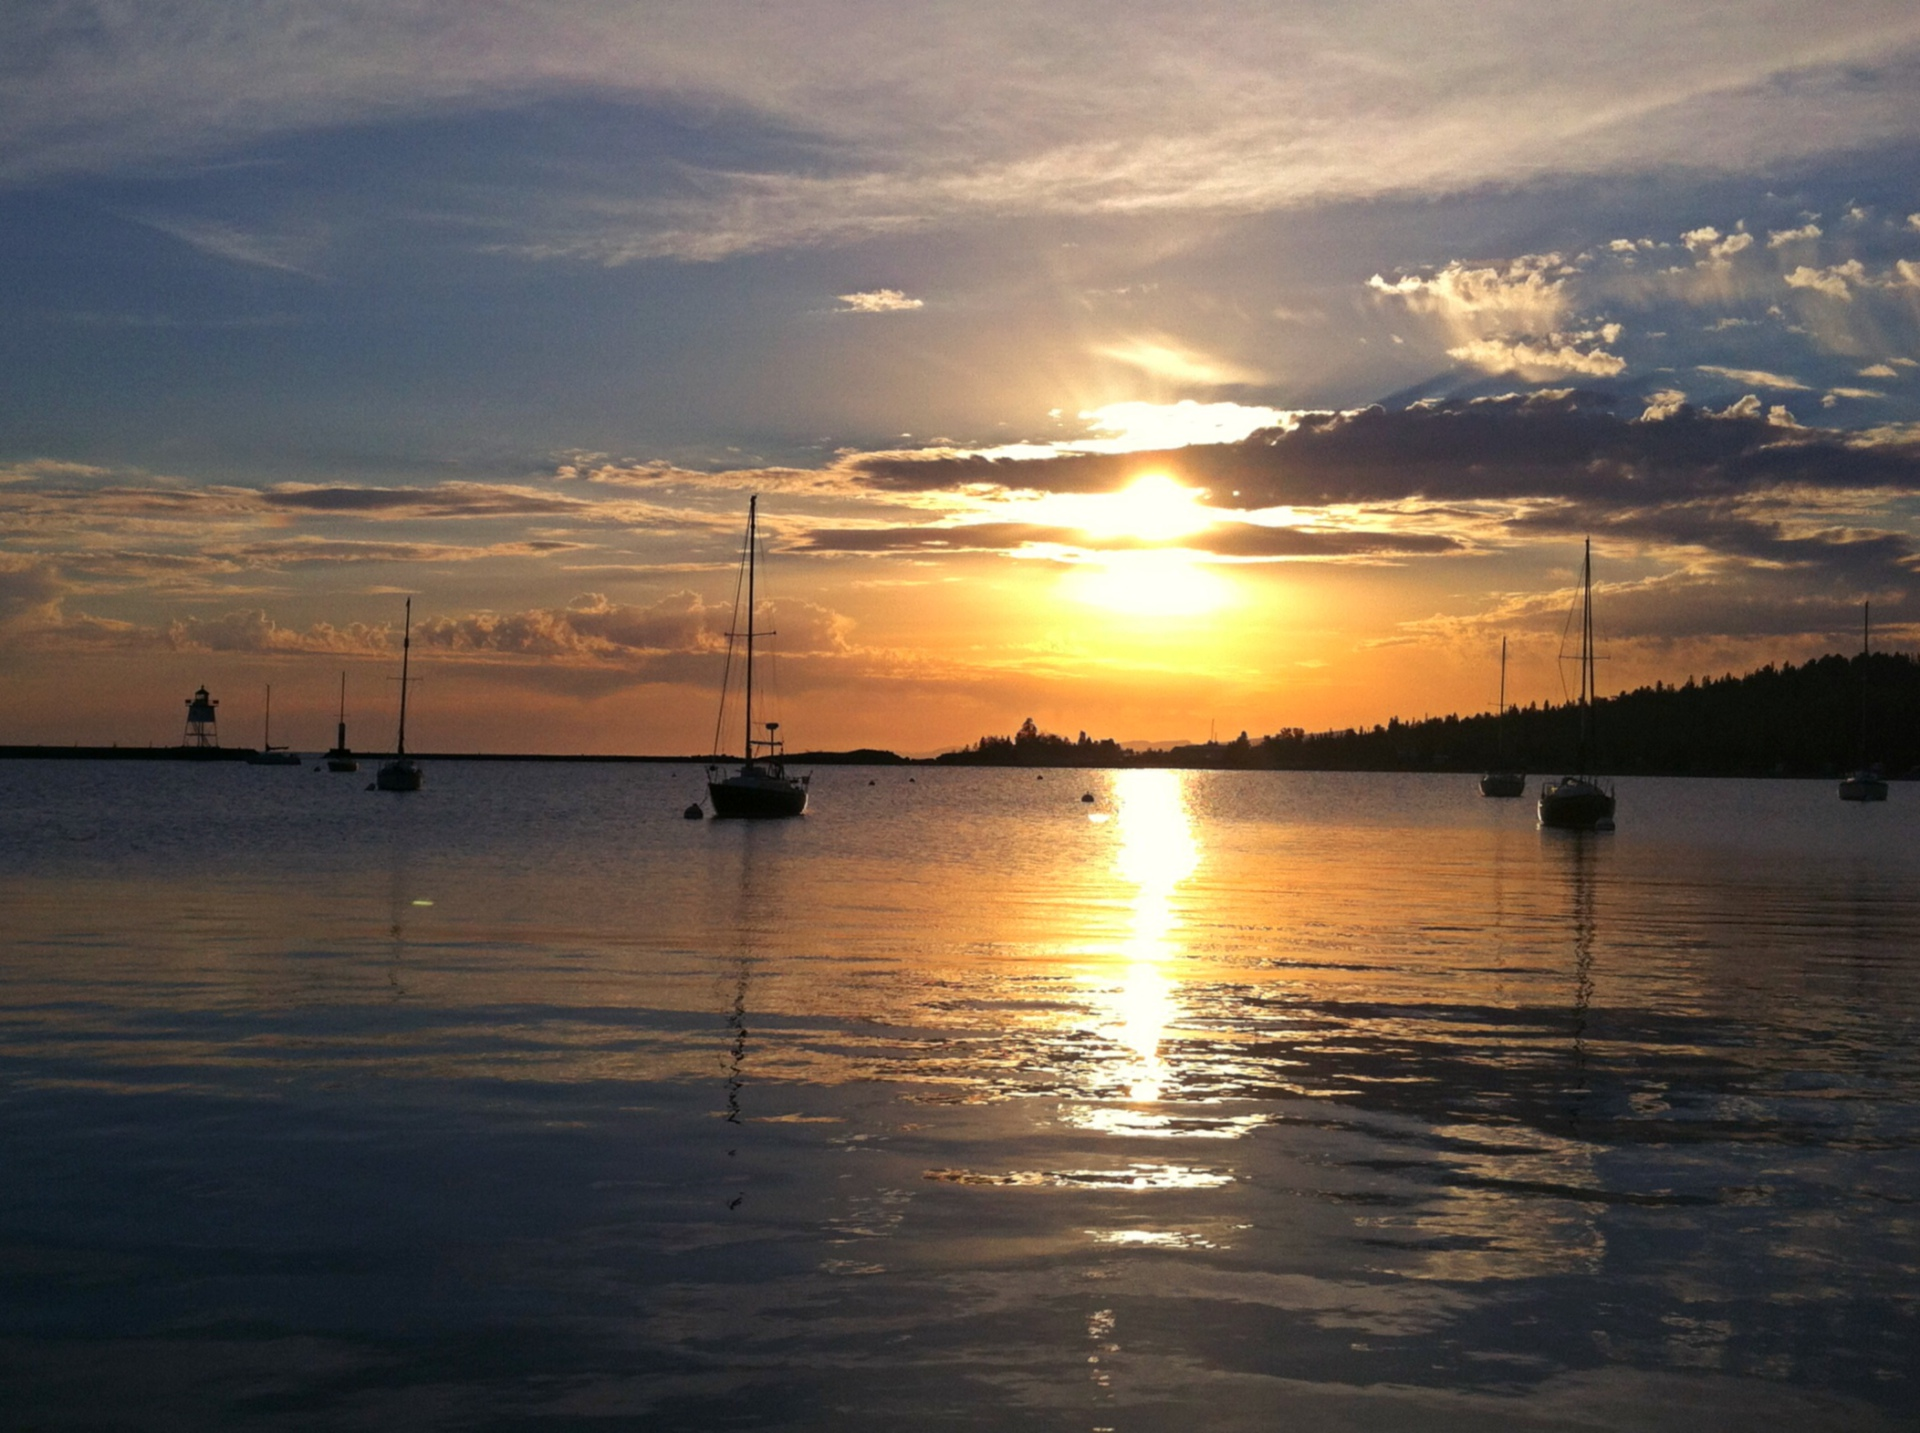 Grand Marais, MN - A Small Slice of Heaven